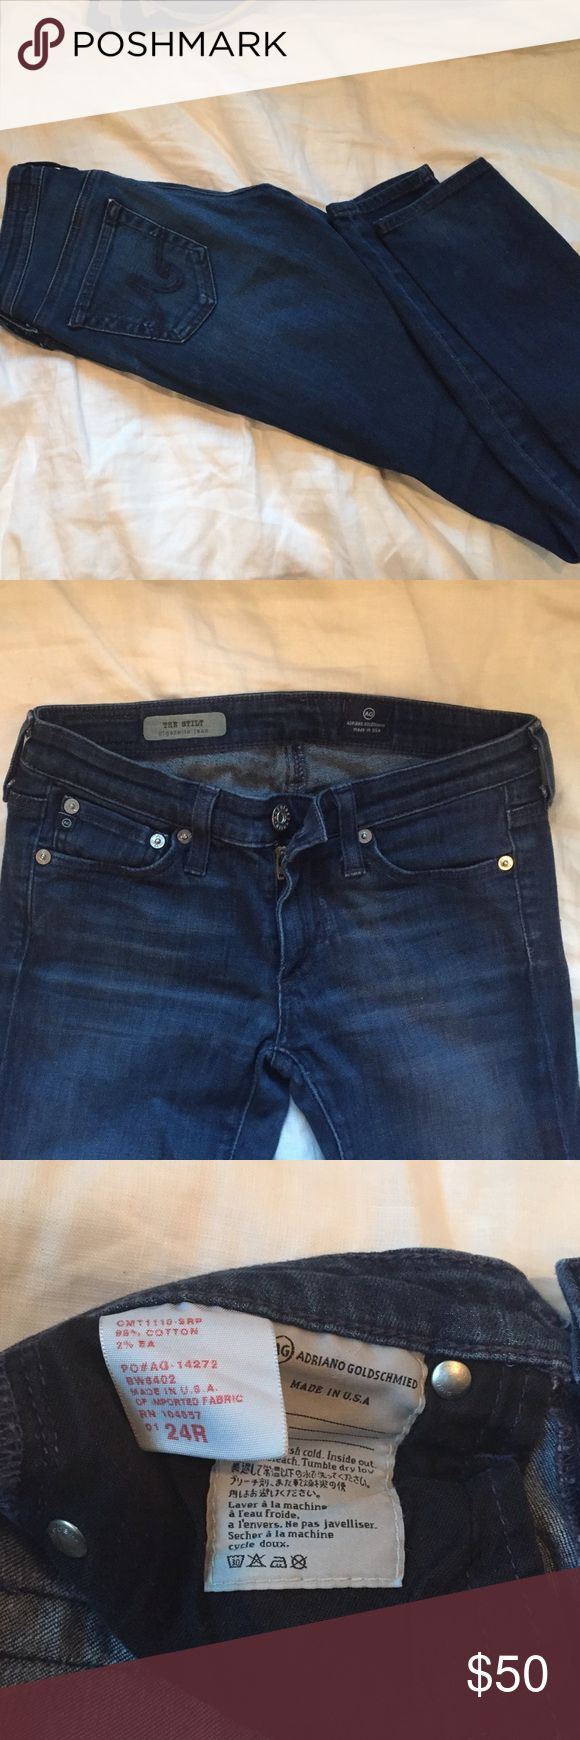 AG Adriano Goldschmied Stilt Cigarette Jeans 24R In perfect condition! Just too small for me. Navy blue AG Adriano Goldschmied Jeans Straight Leg